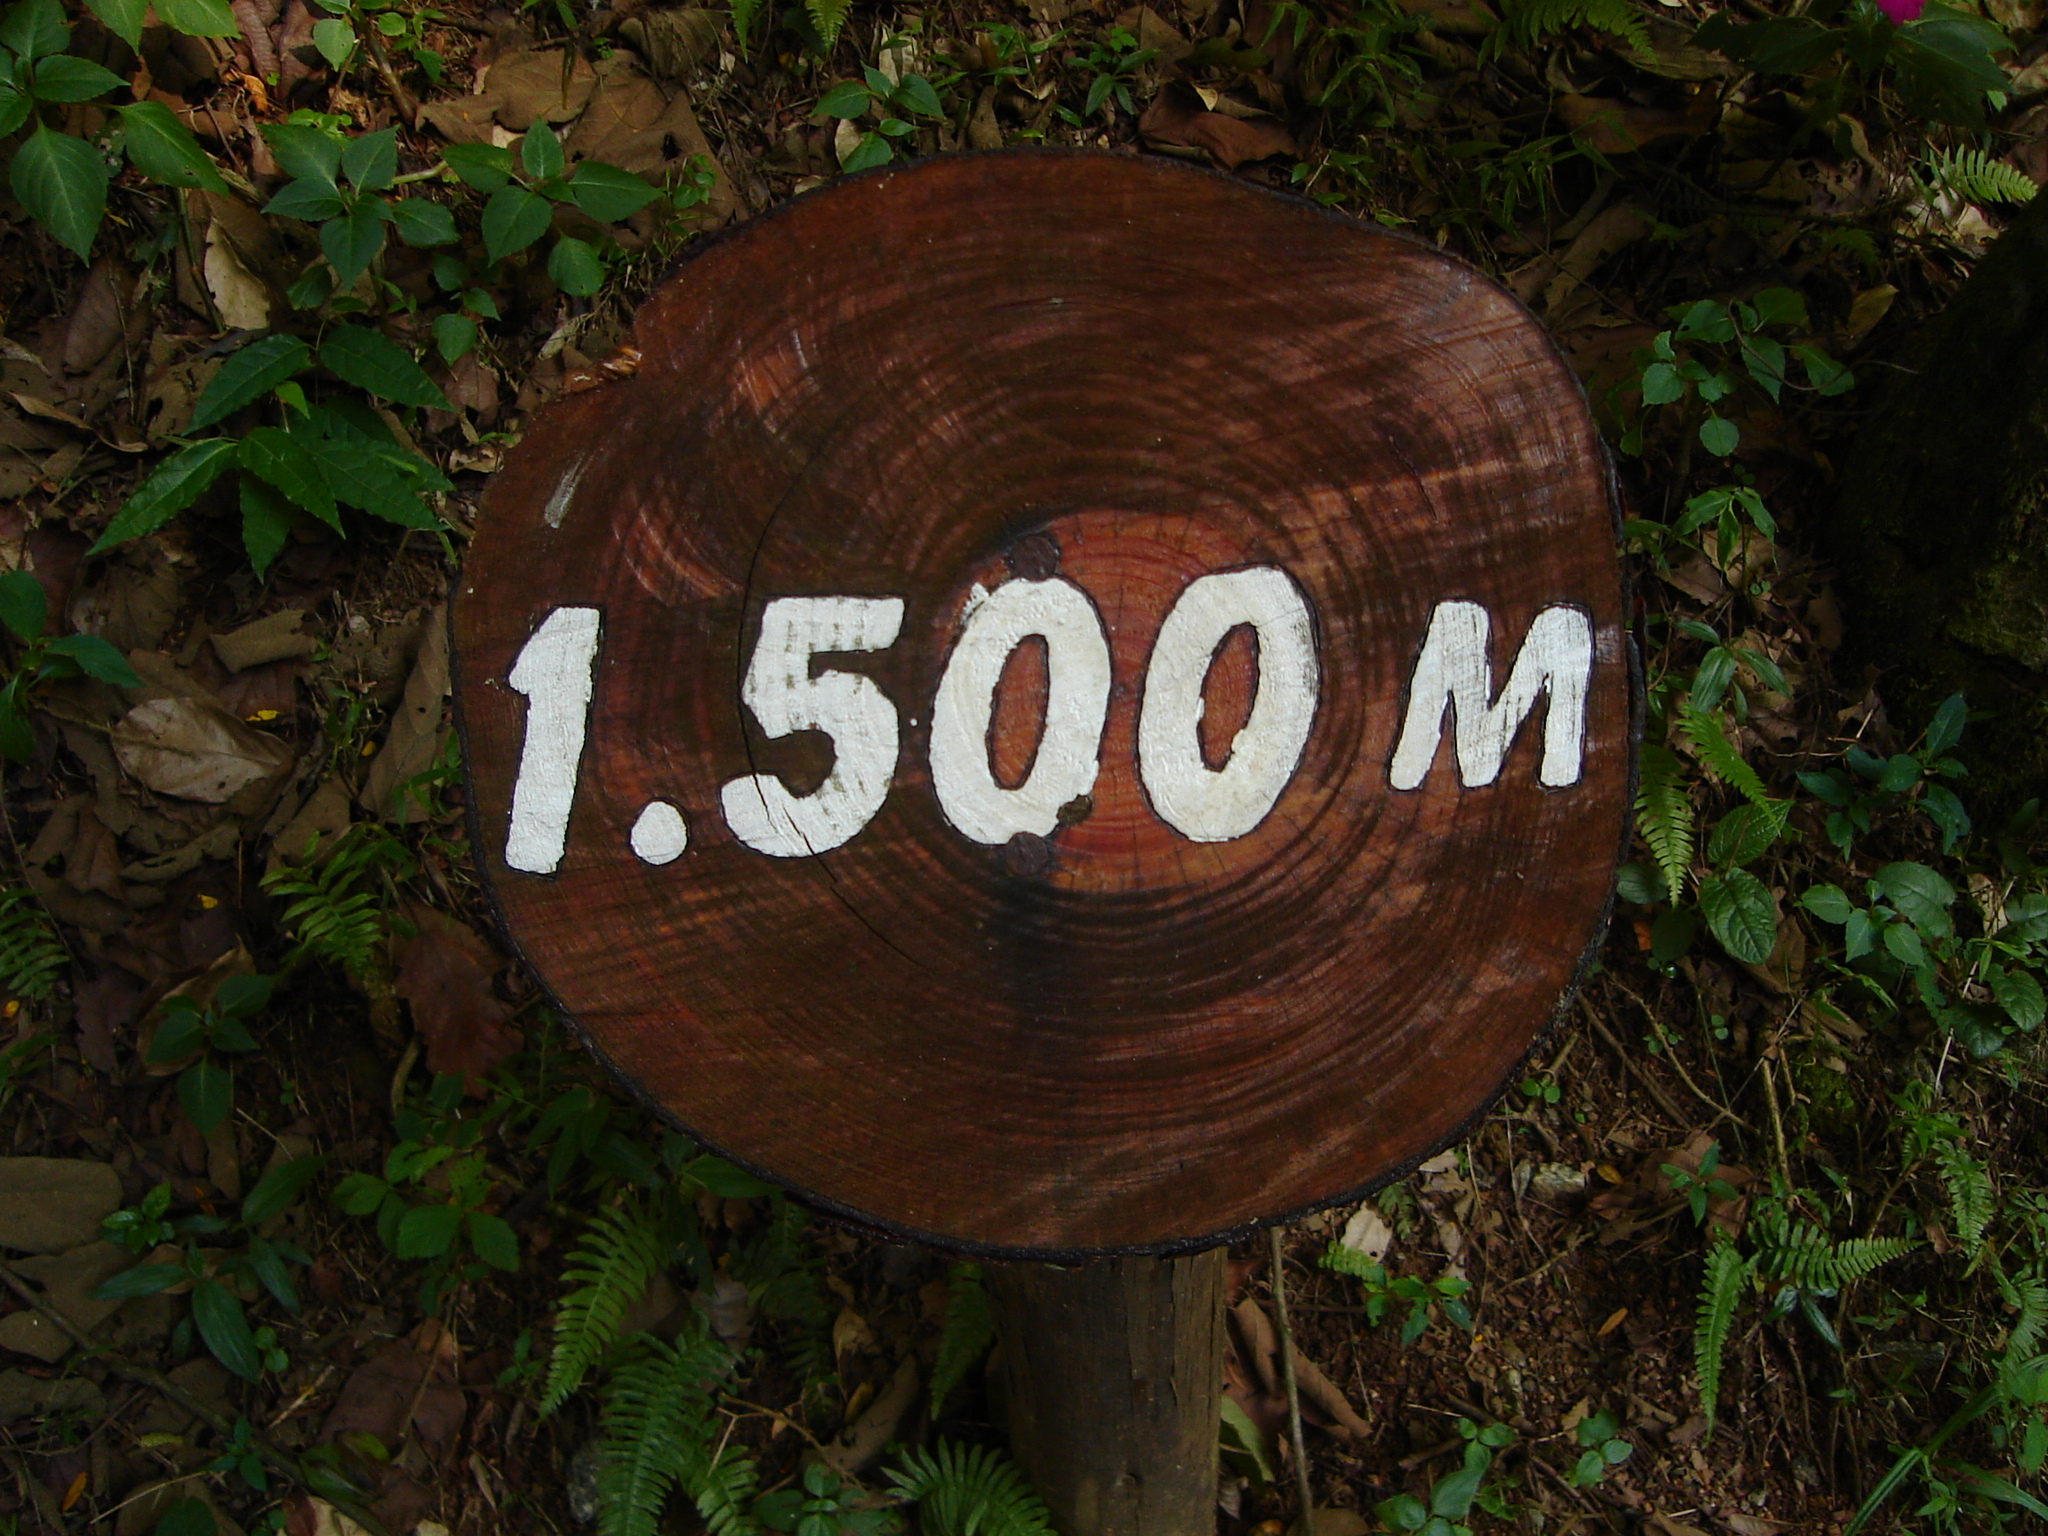 poows 1500 meter fifteen hundred meter sign post height